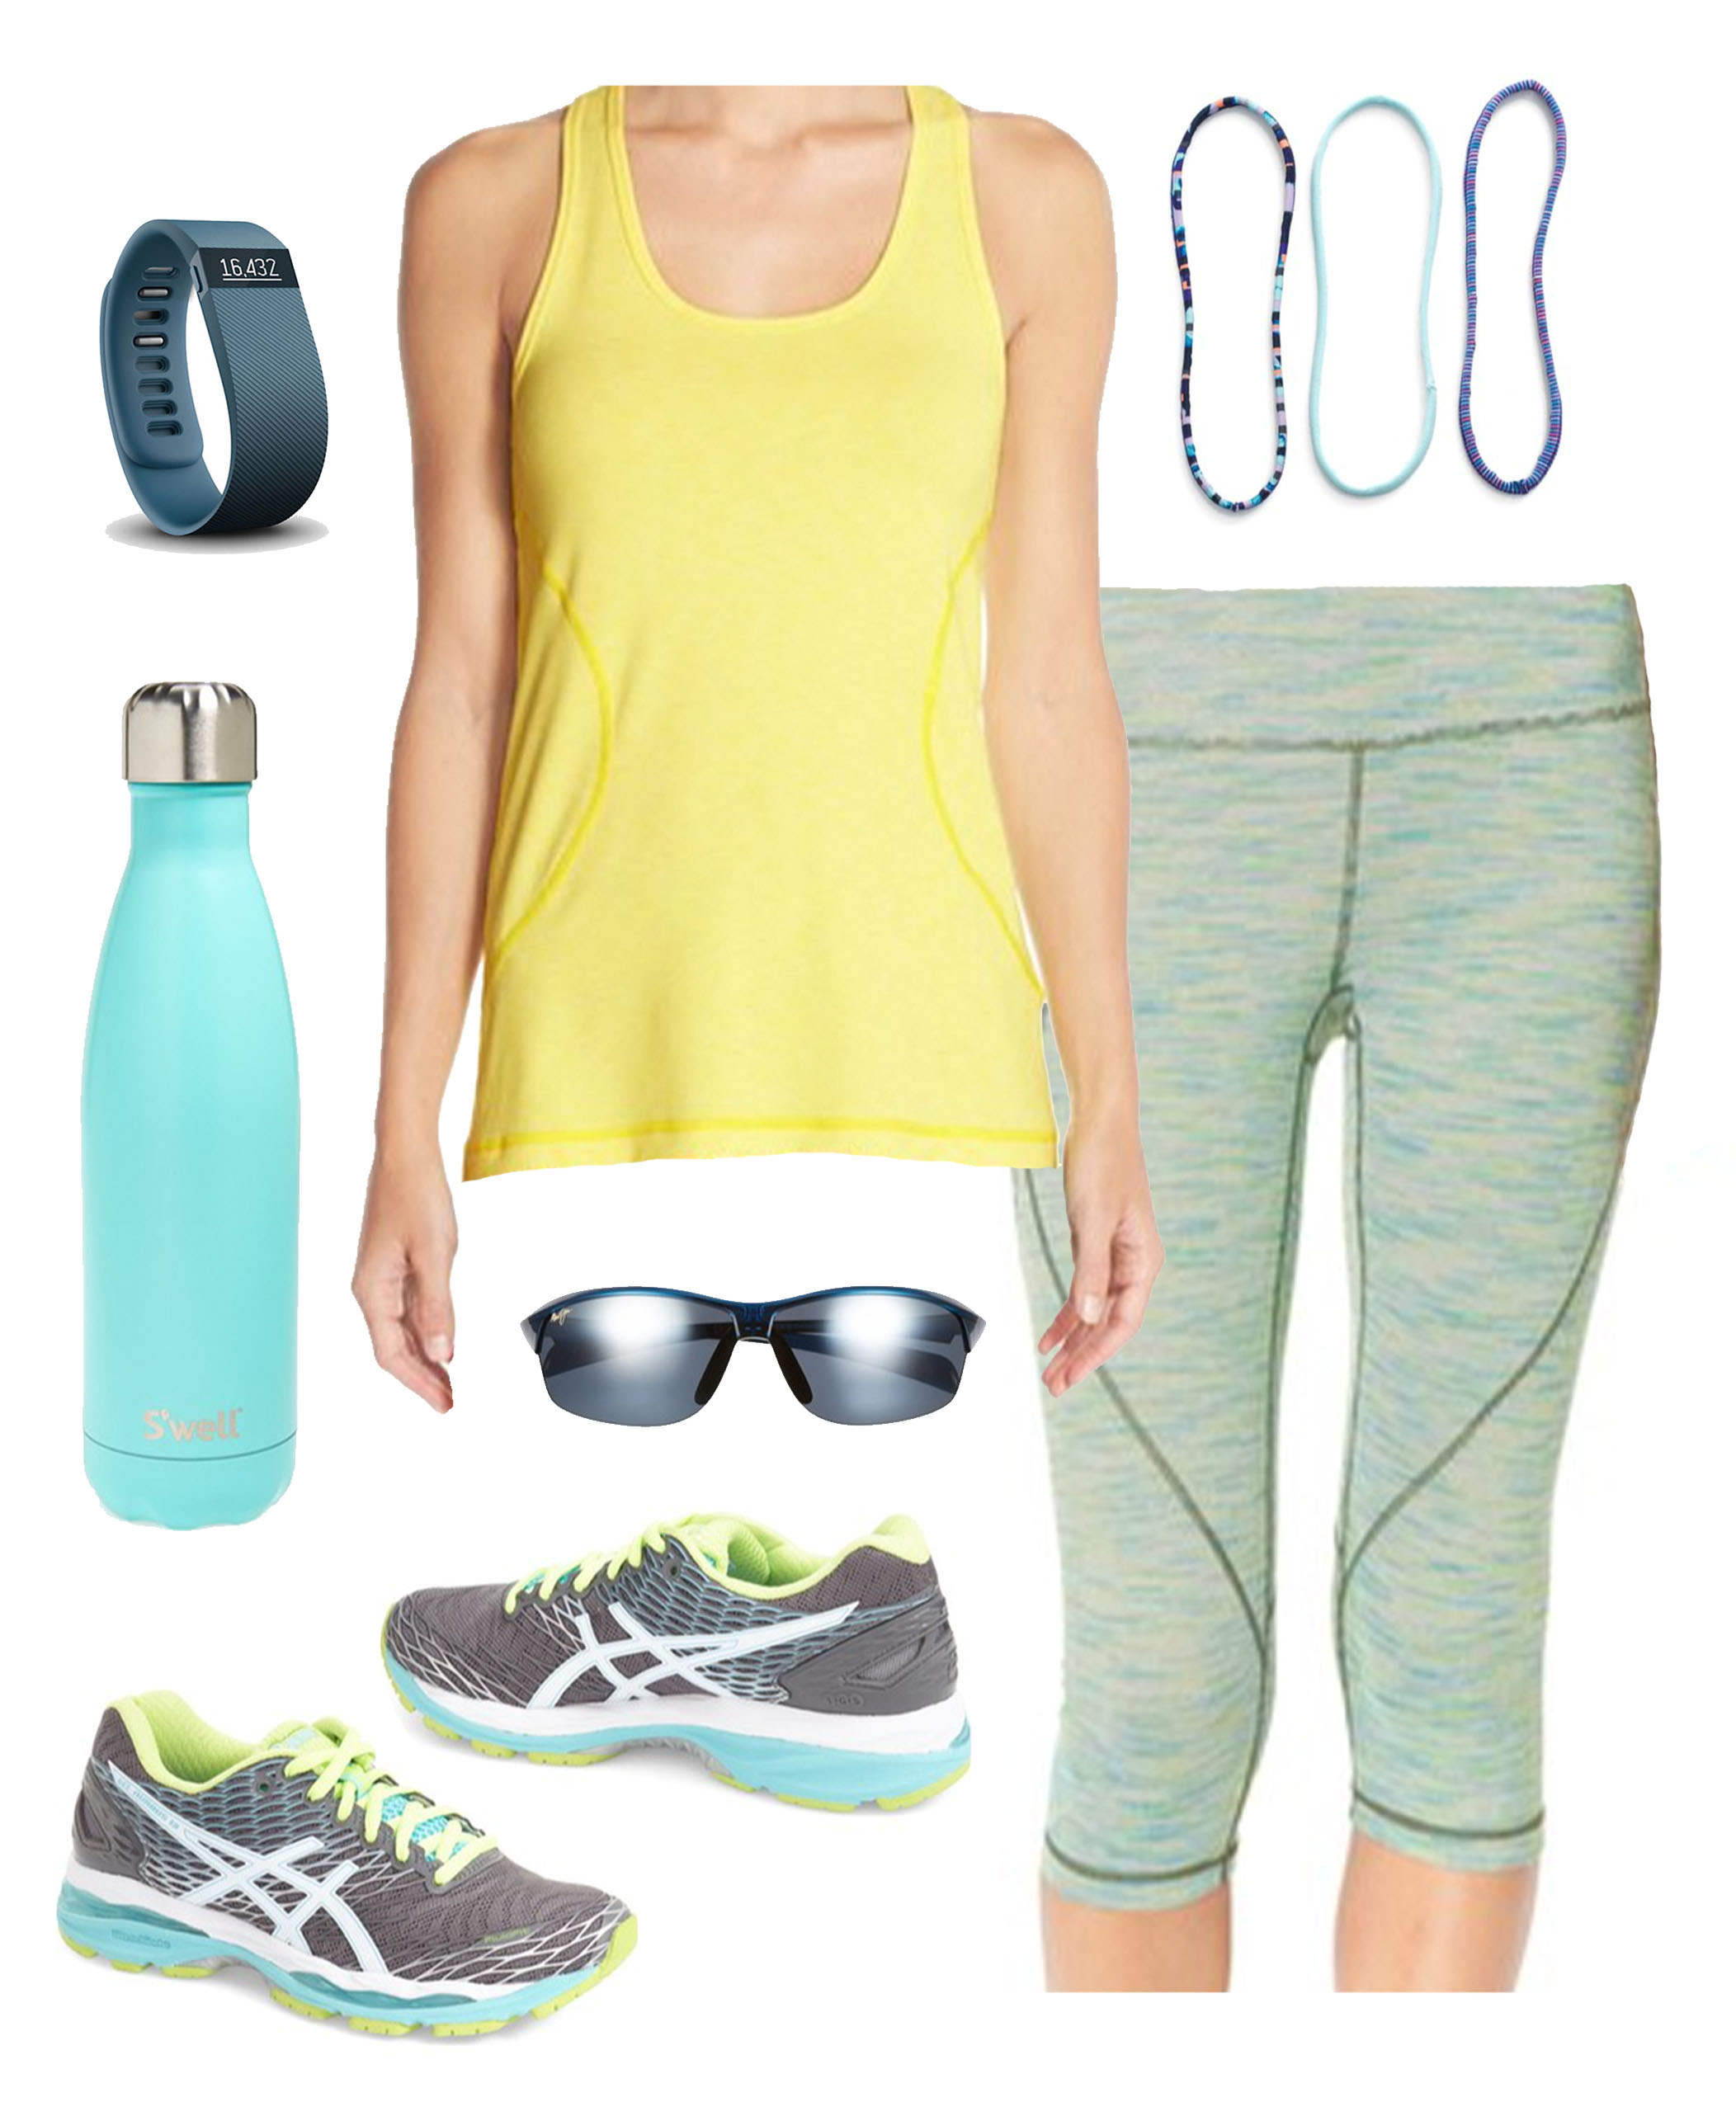 MOTIVATION WITH ACTIVEWEAR